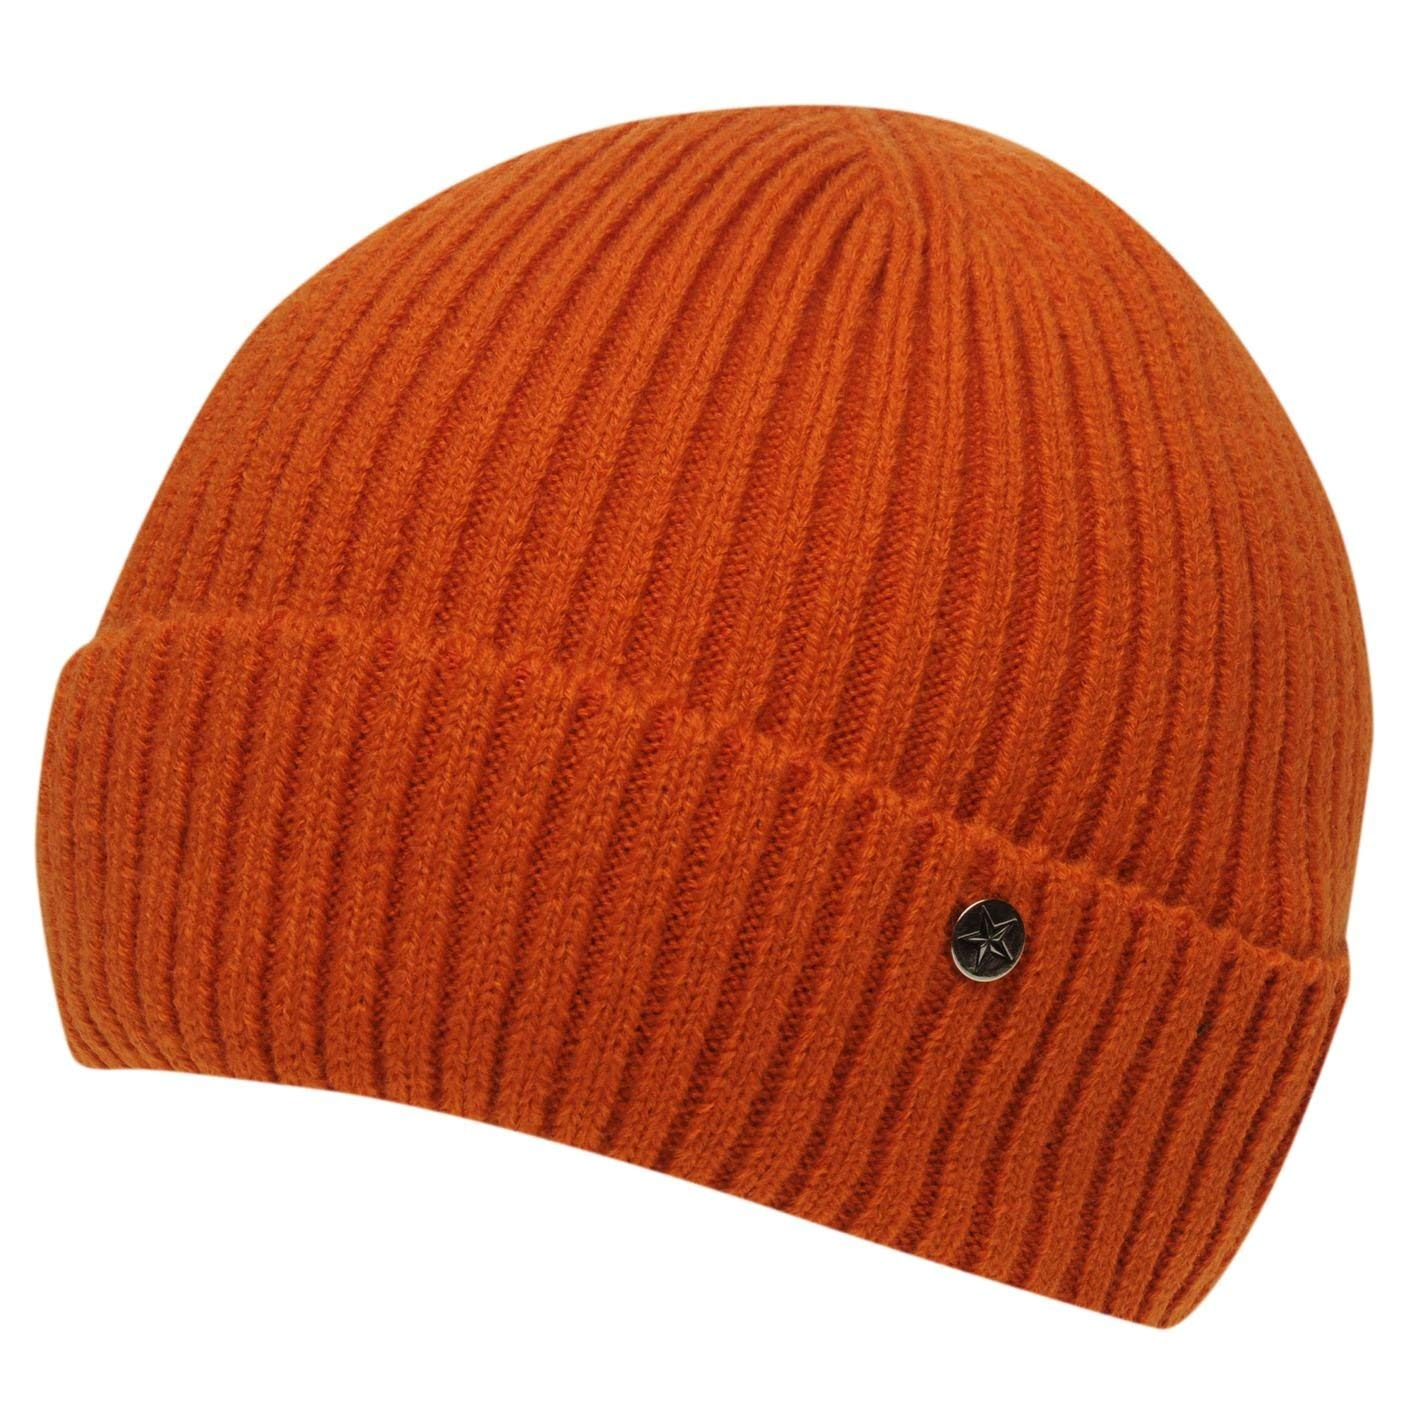 f08c5be0 Cheap Mens Hat Styles, find Mens Hat Styles deals on line at Alibaba.com